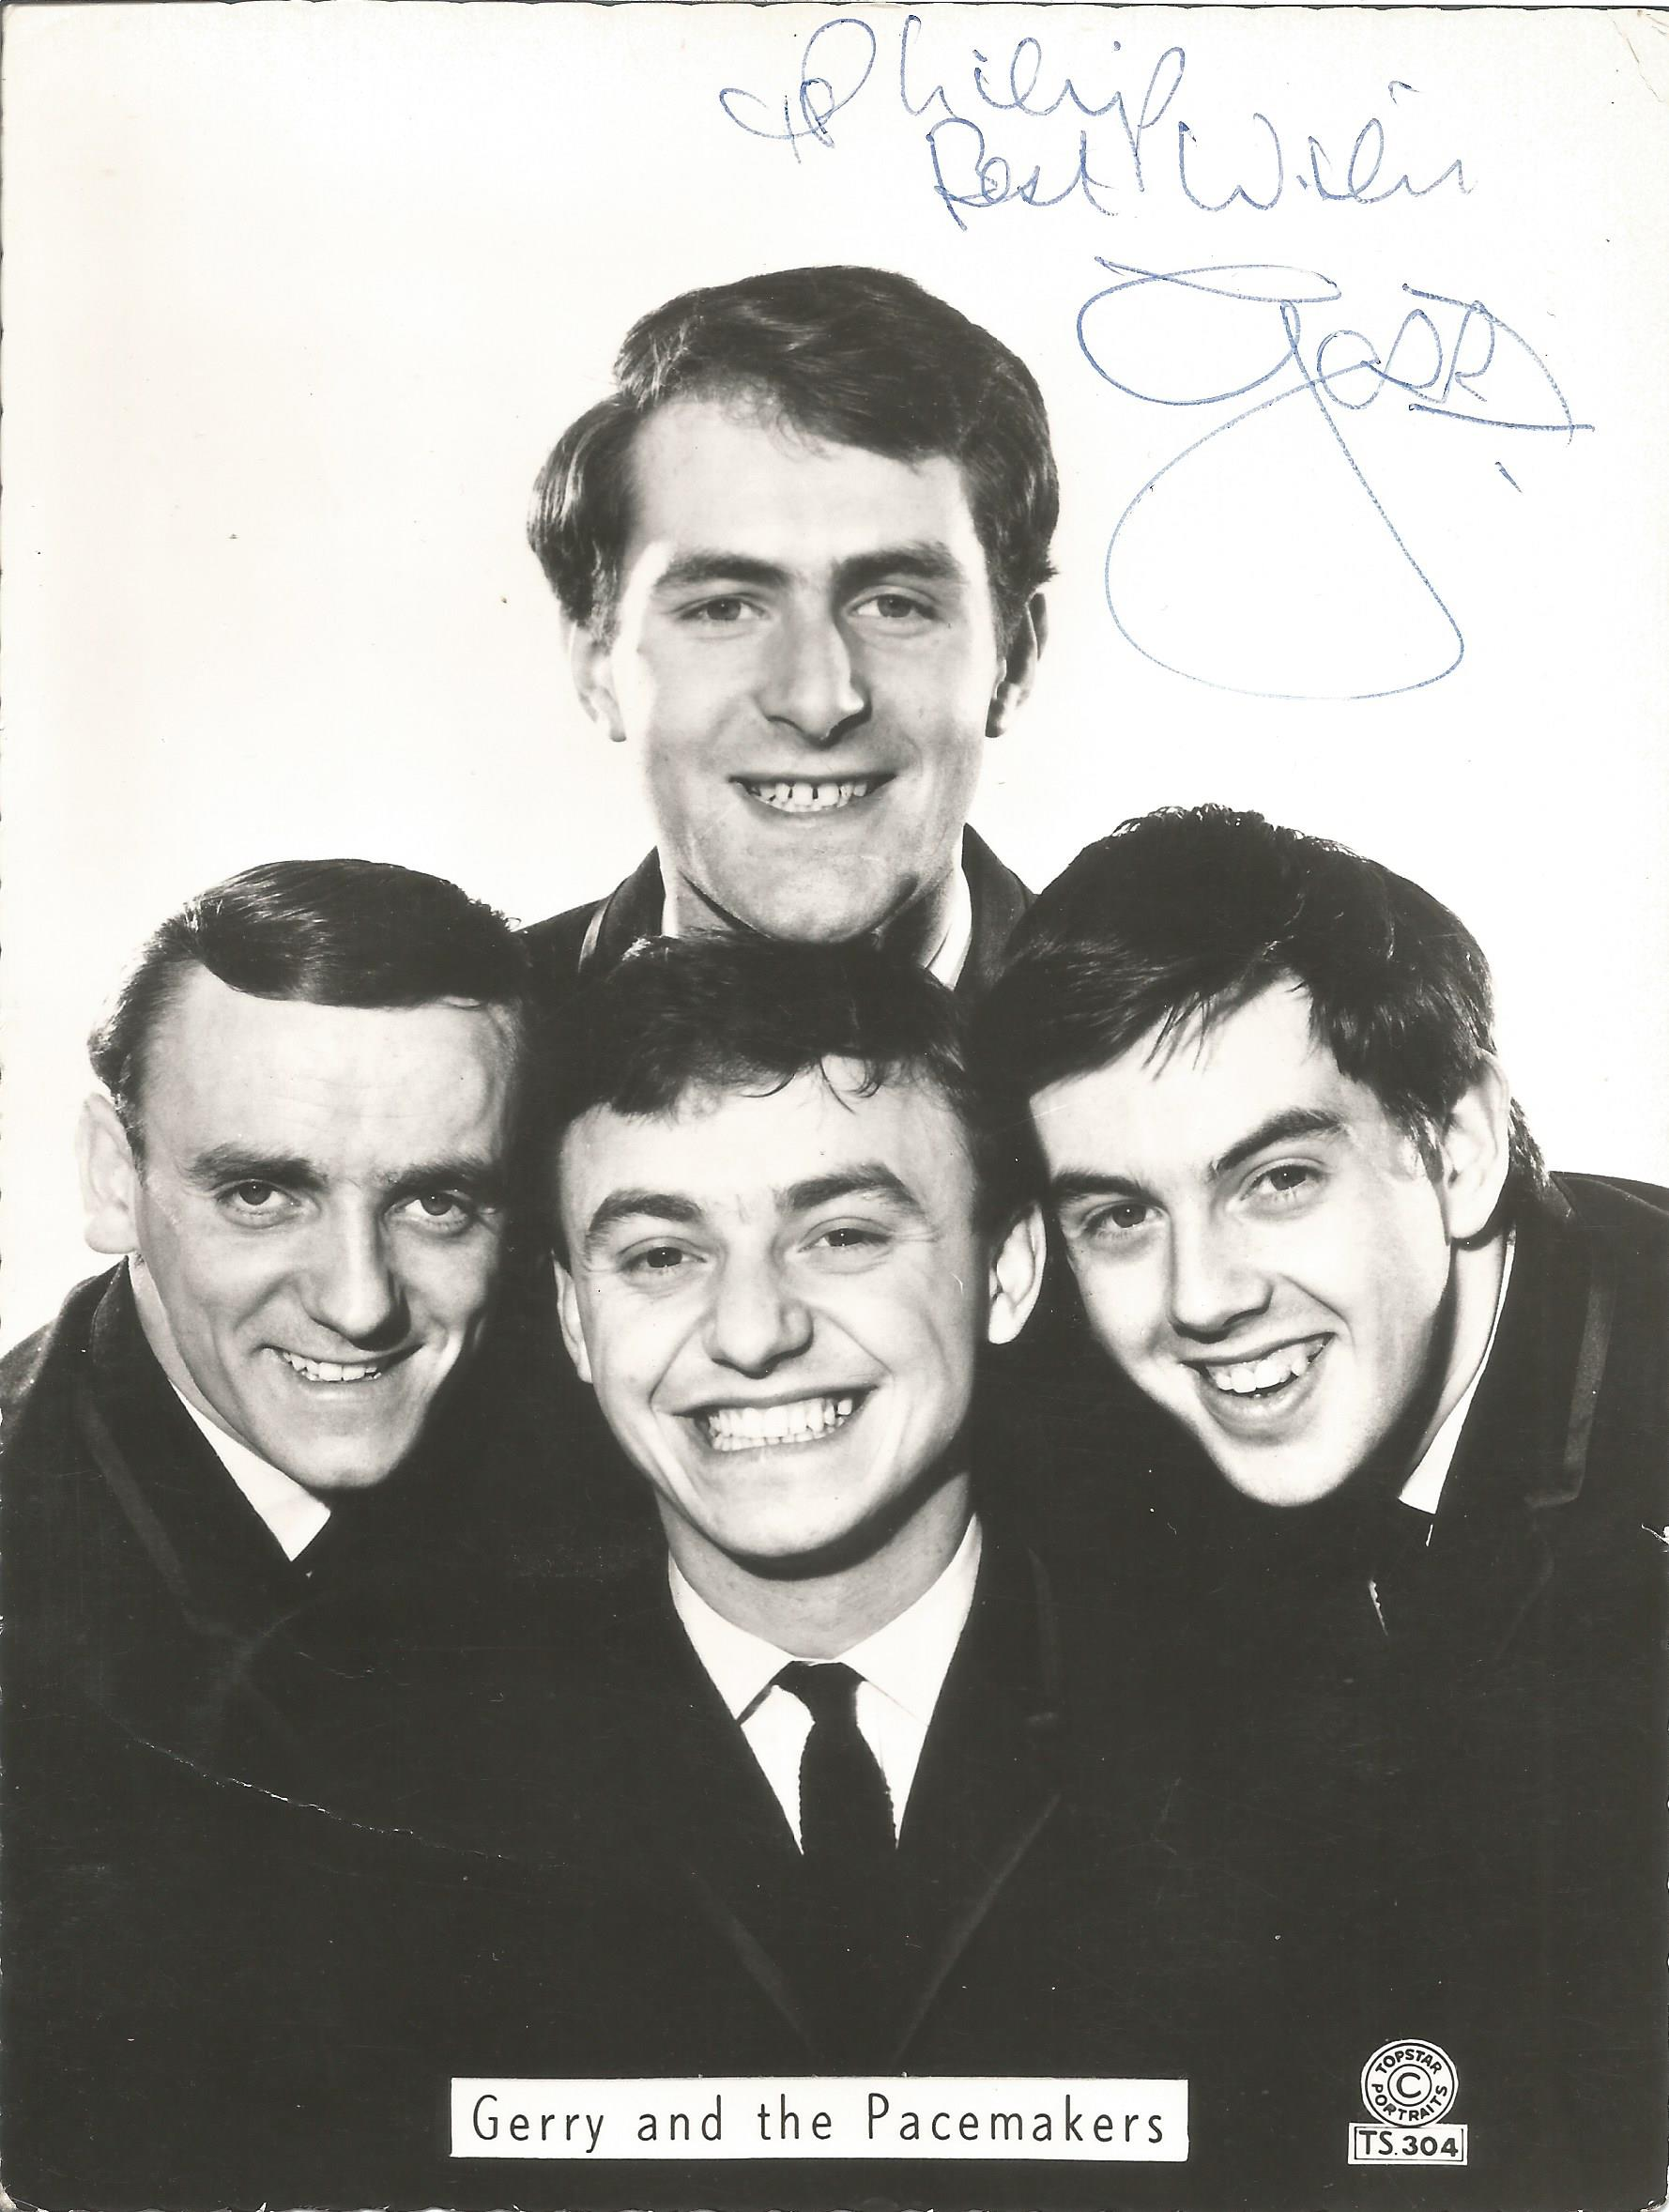 Singer-Songwriter Gerry Marsden signed 8x6 black and white image of Gerry and the Pacemakers. Gerard